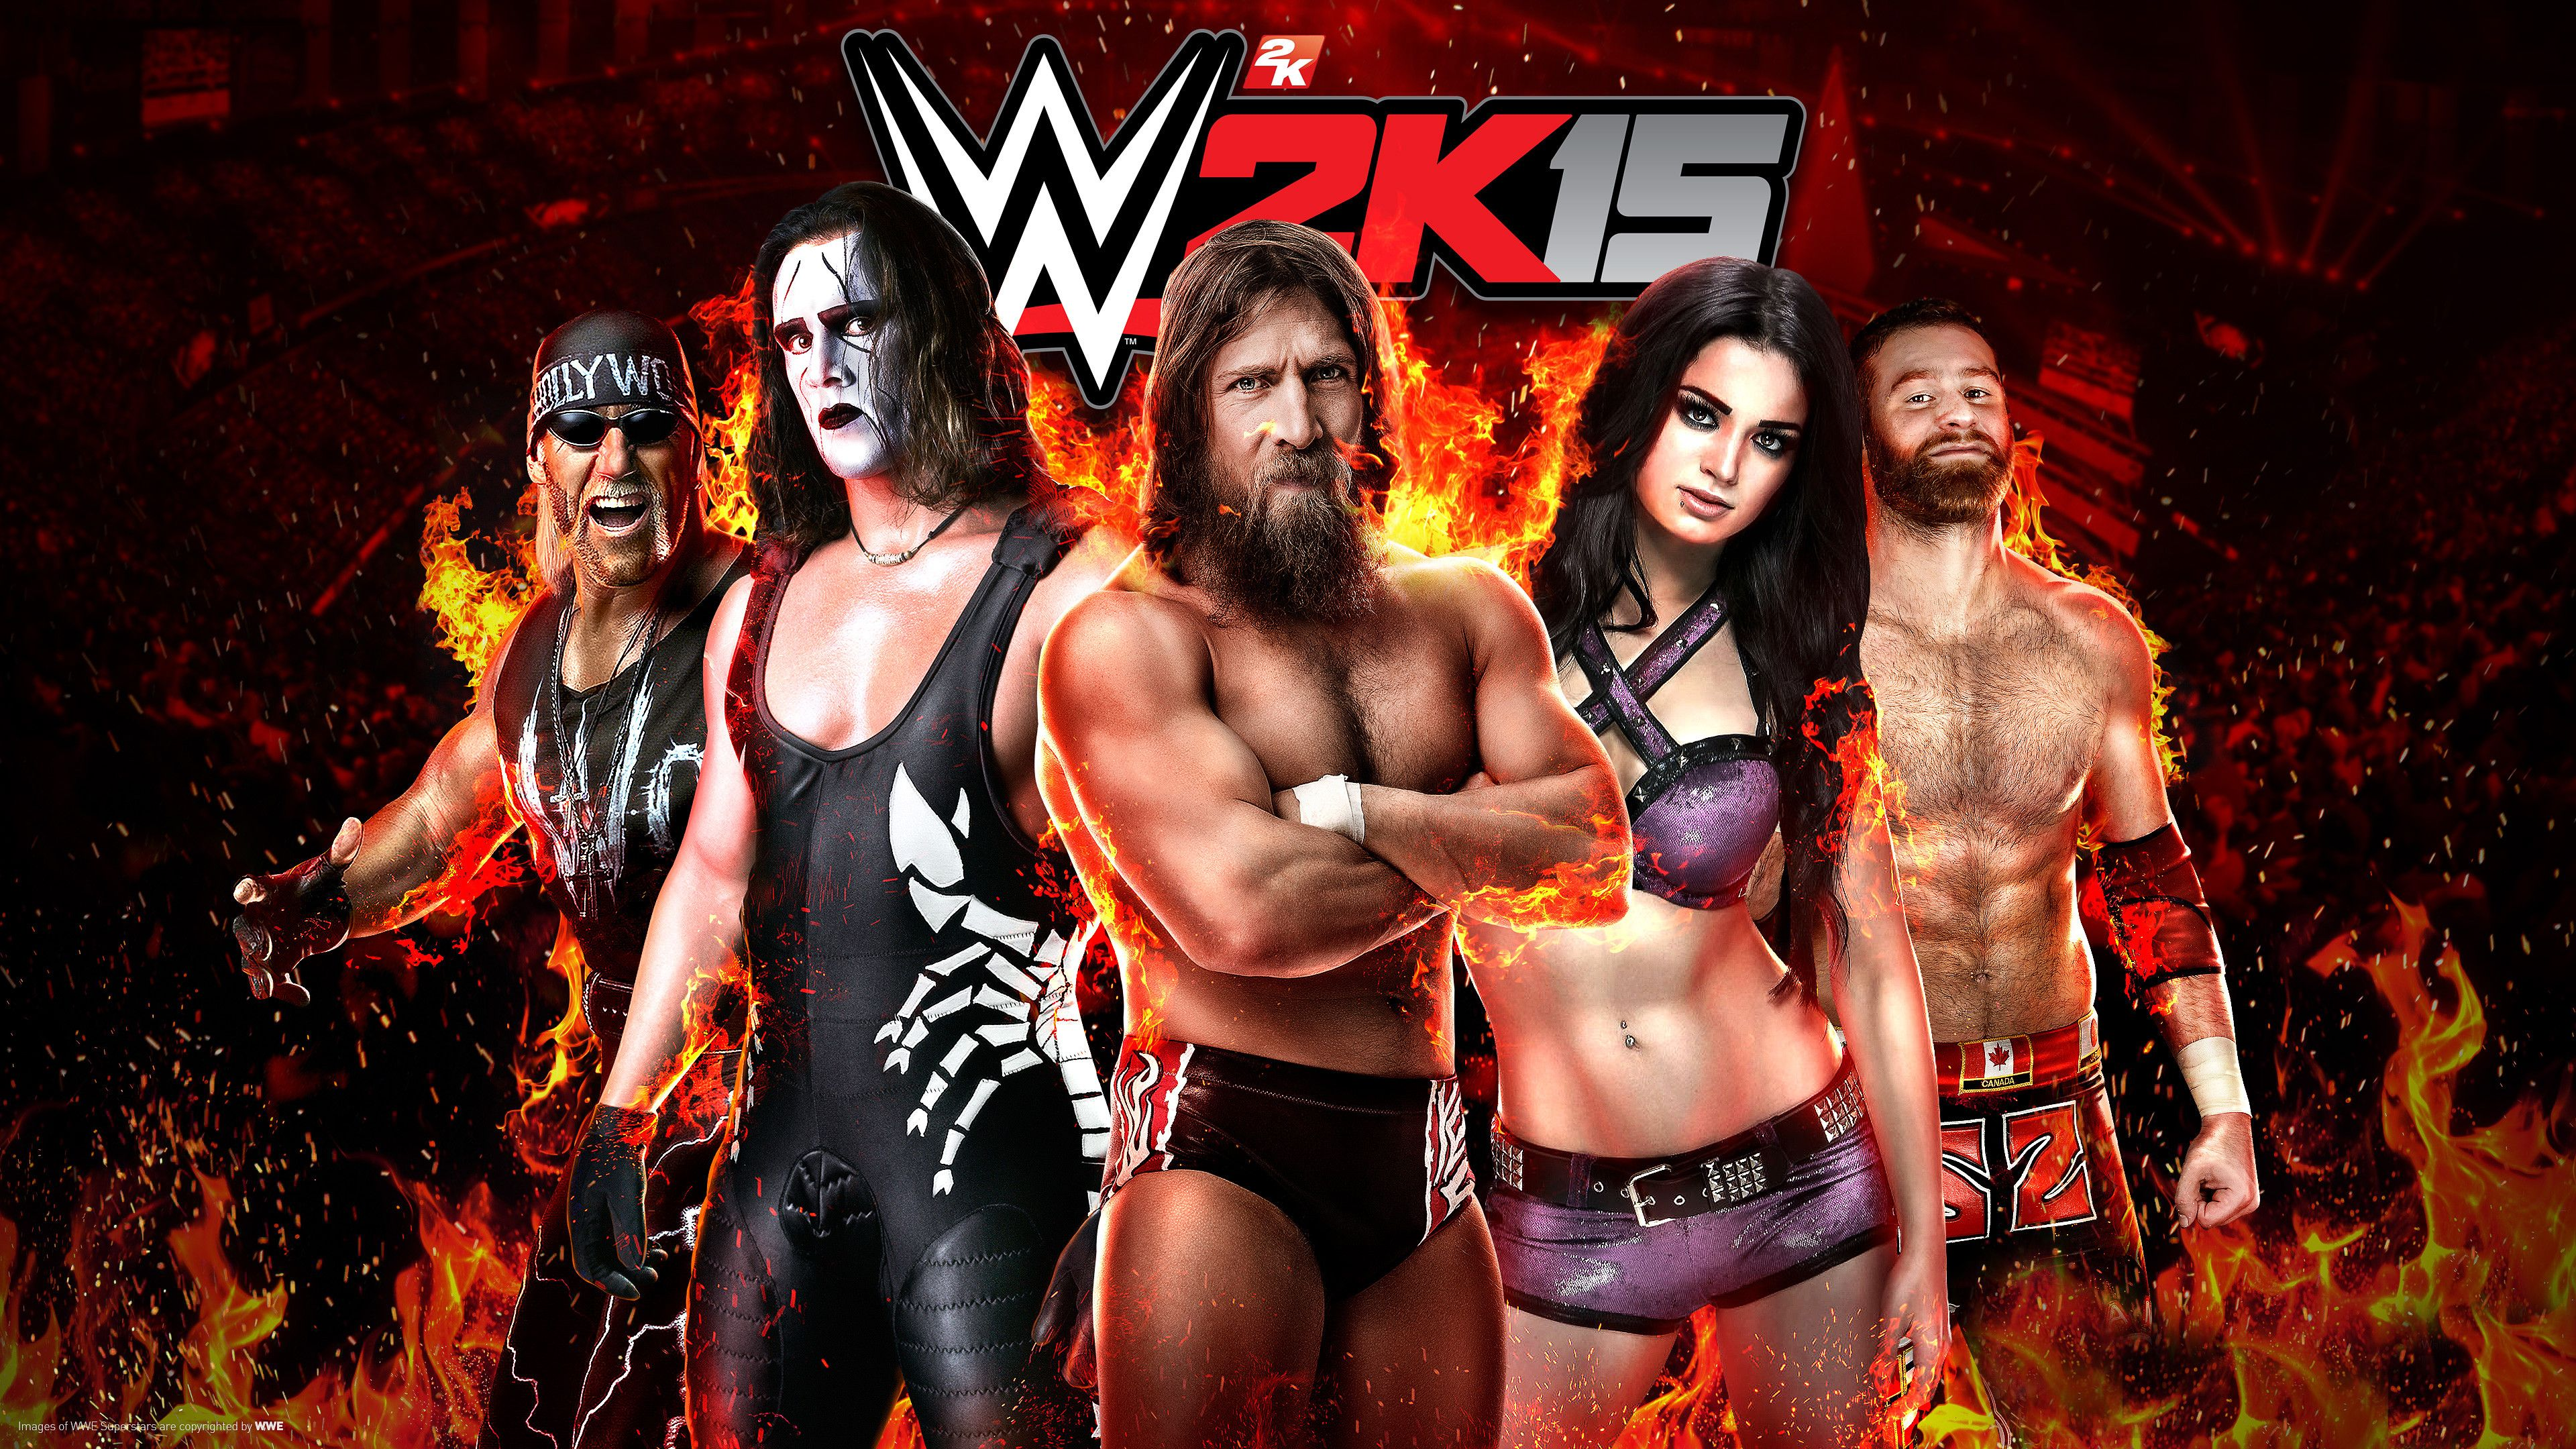 Wwe Best Wallpaper Of The Month 3840x2160 Wwe Download Games Pc Games Download